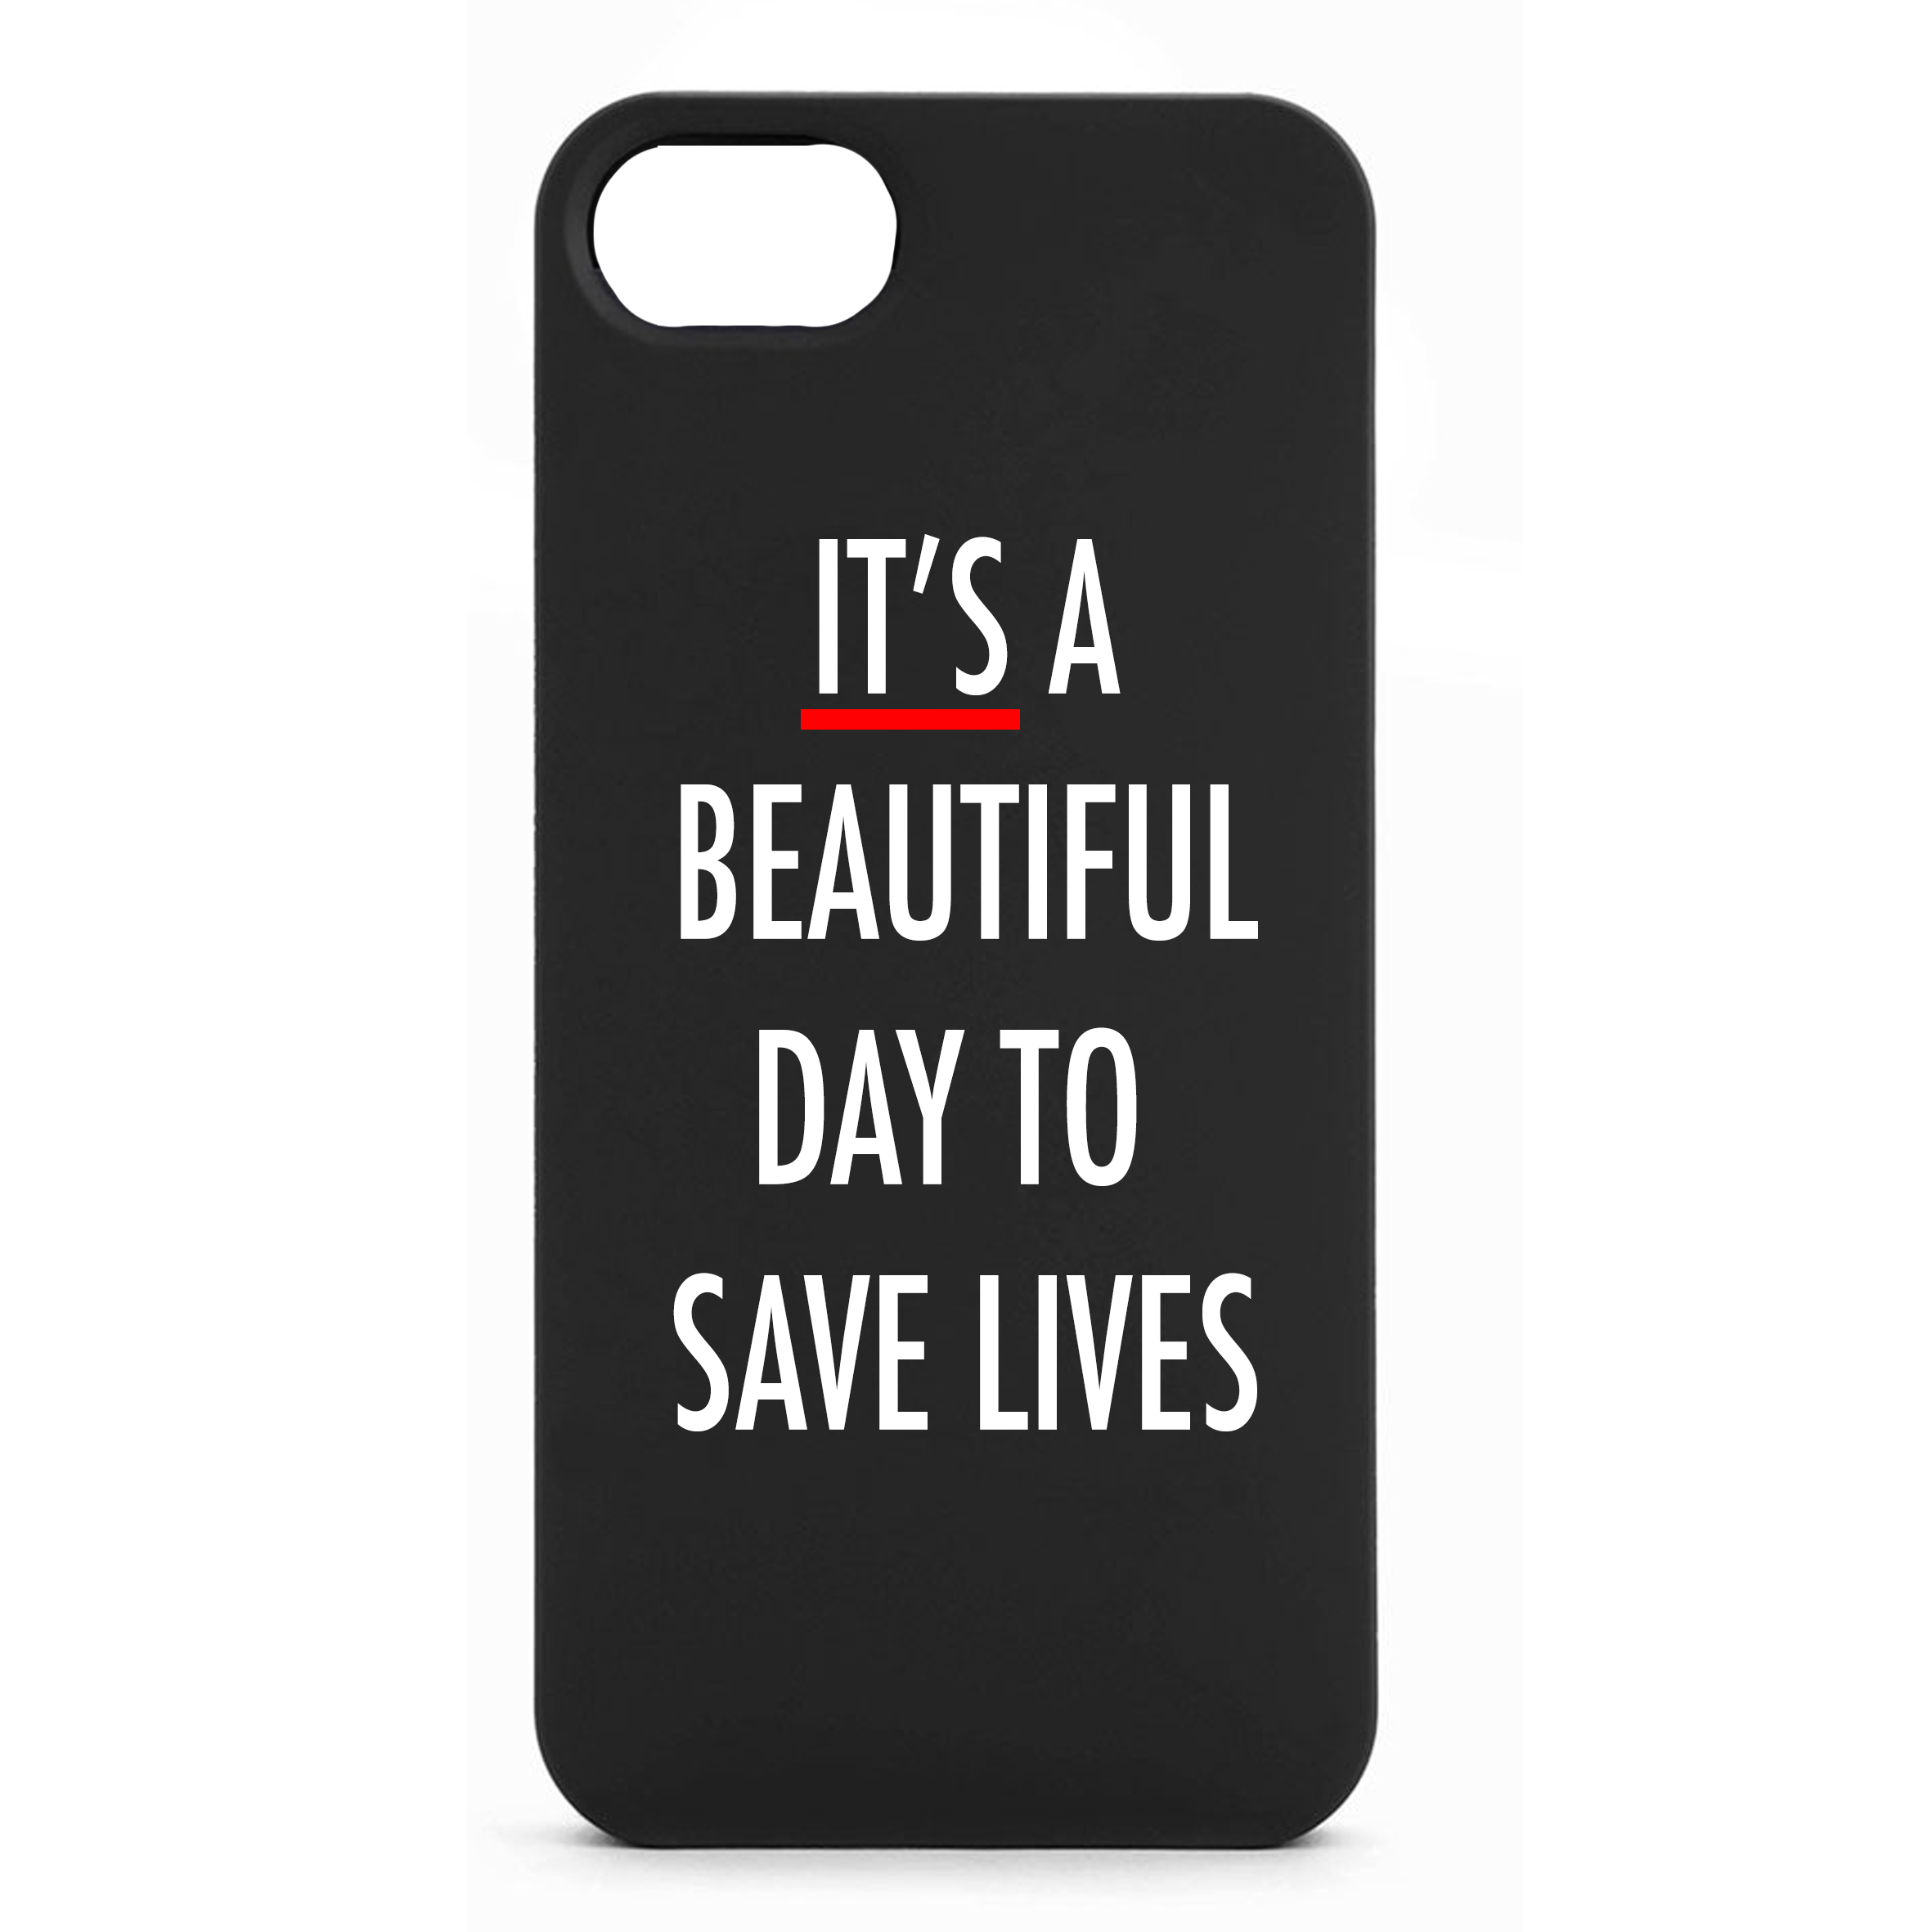 It's a beautiful day to save lives phone case